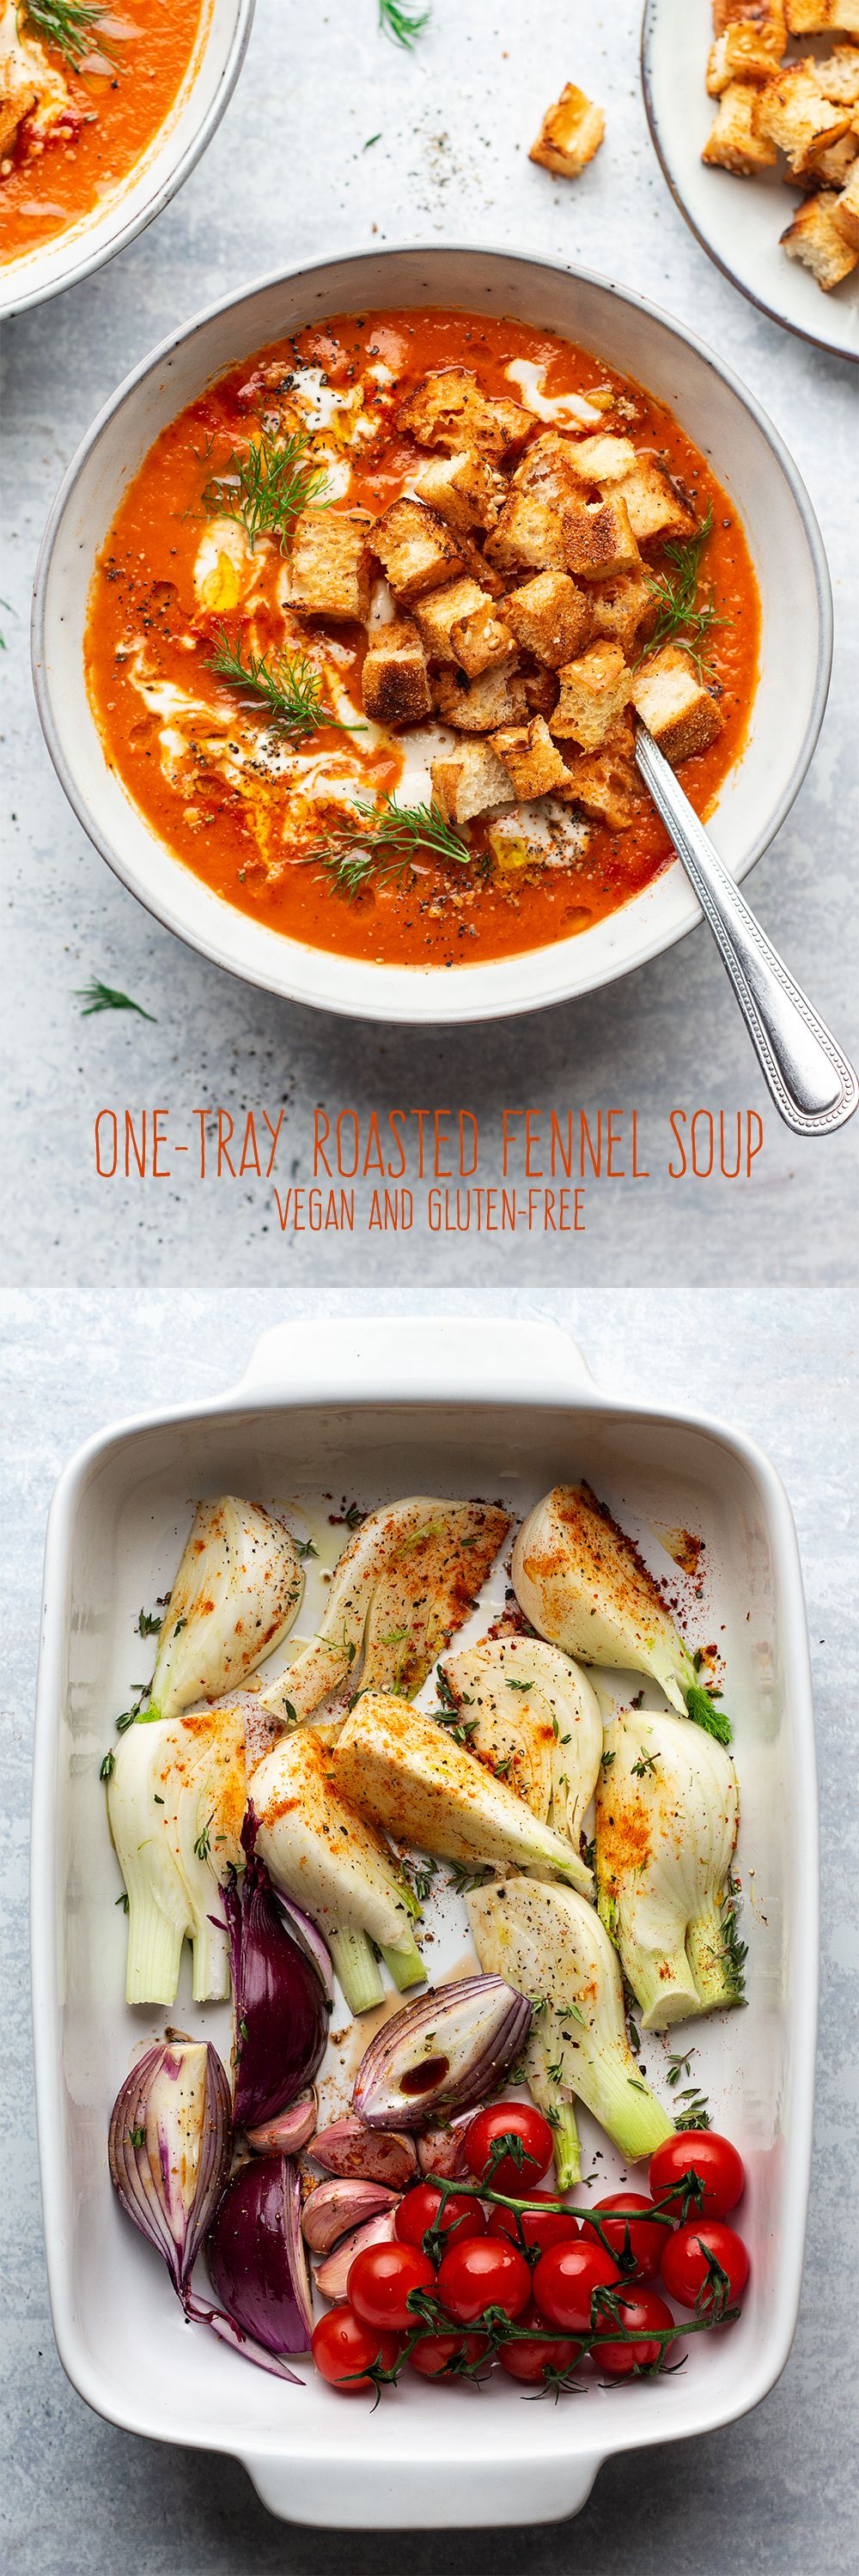 Roasted tomato and fennel soup Recipe in 2020 Vegan